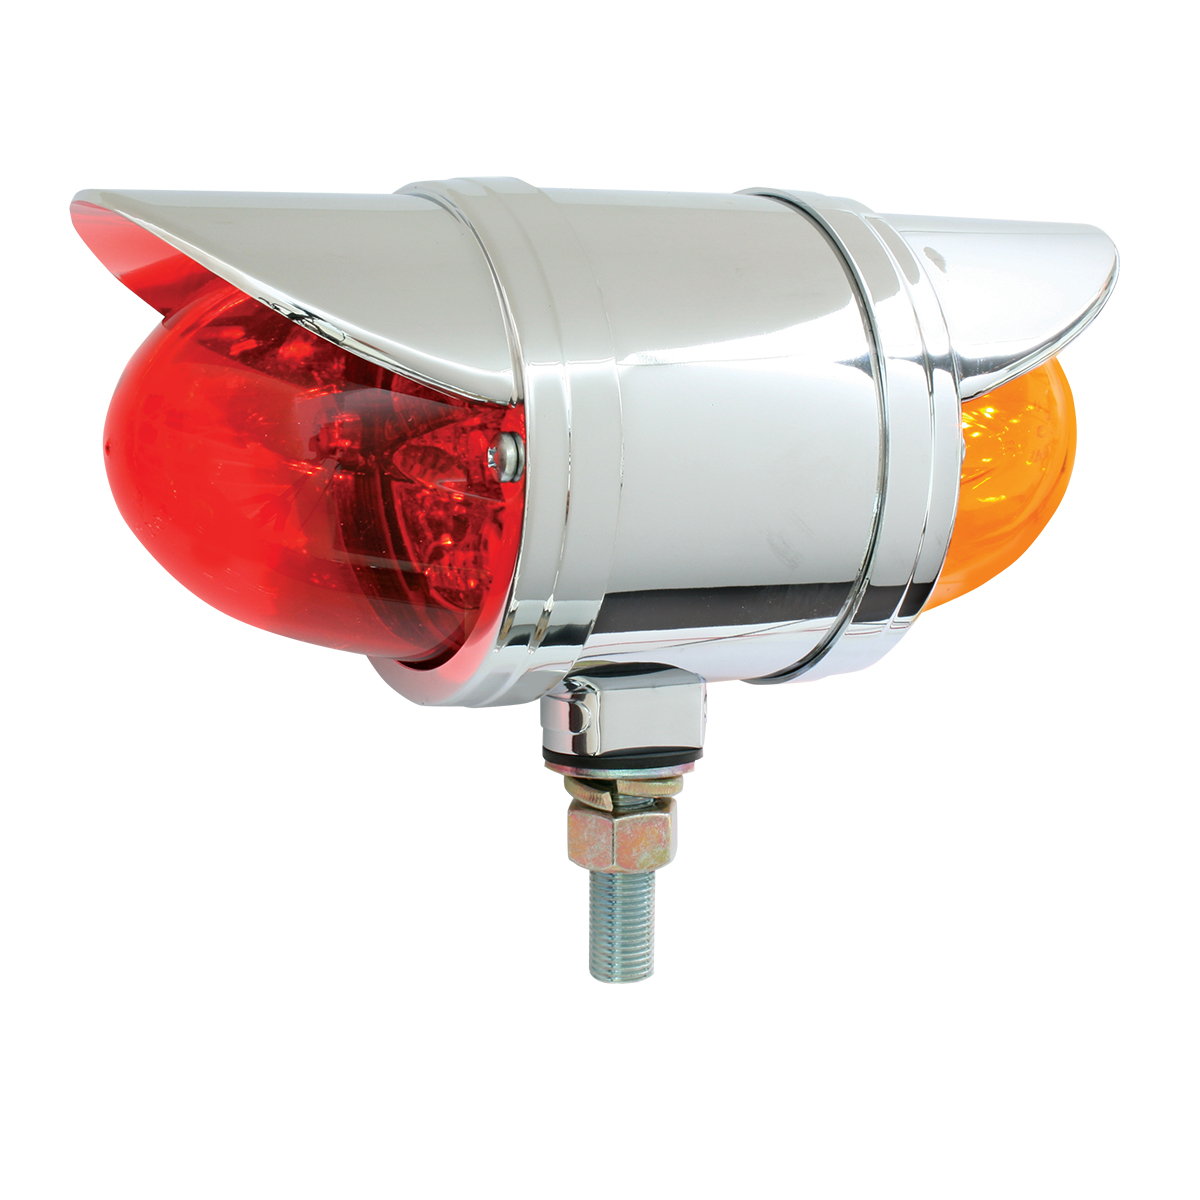 77933 Double Face Spyder LED Pedestal Light